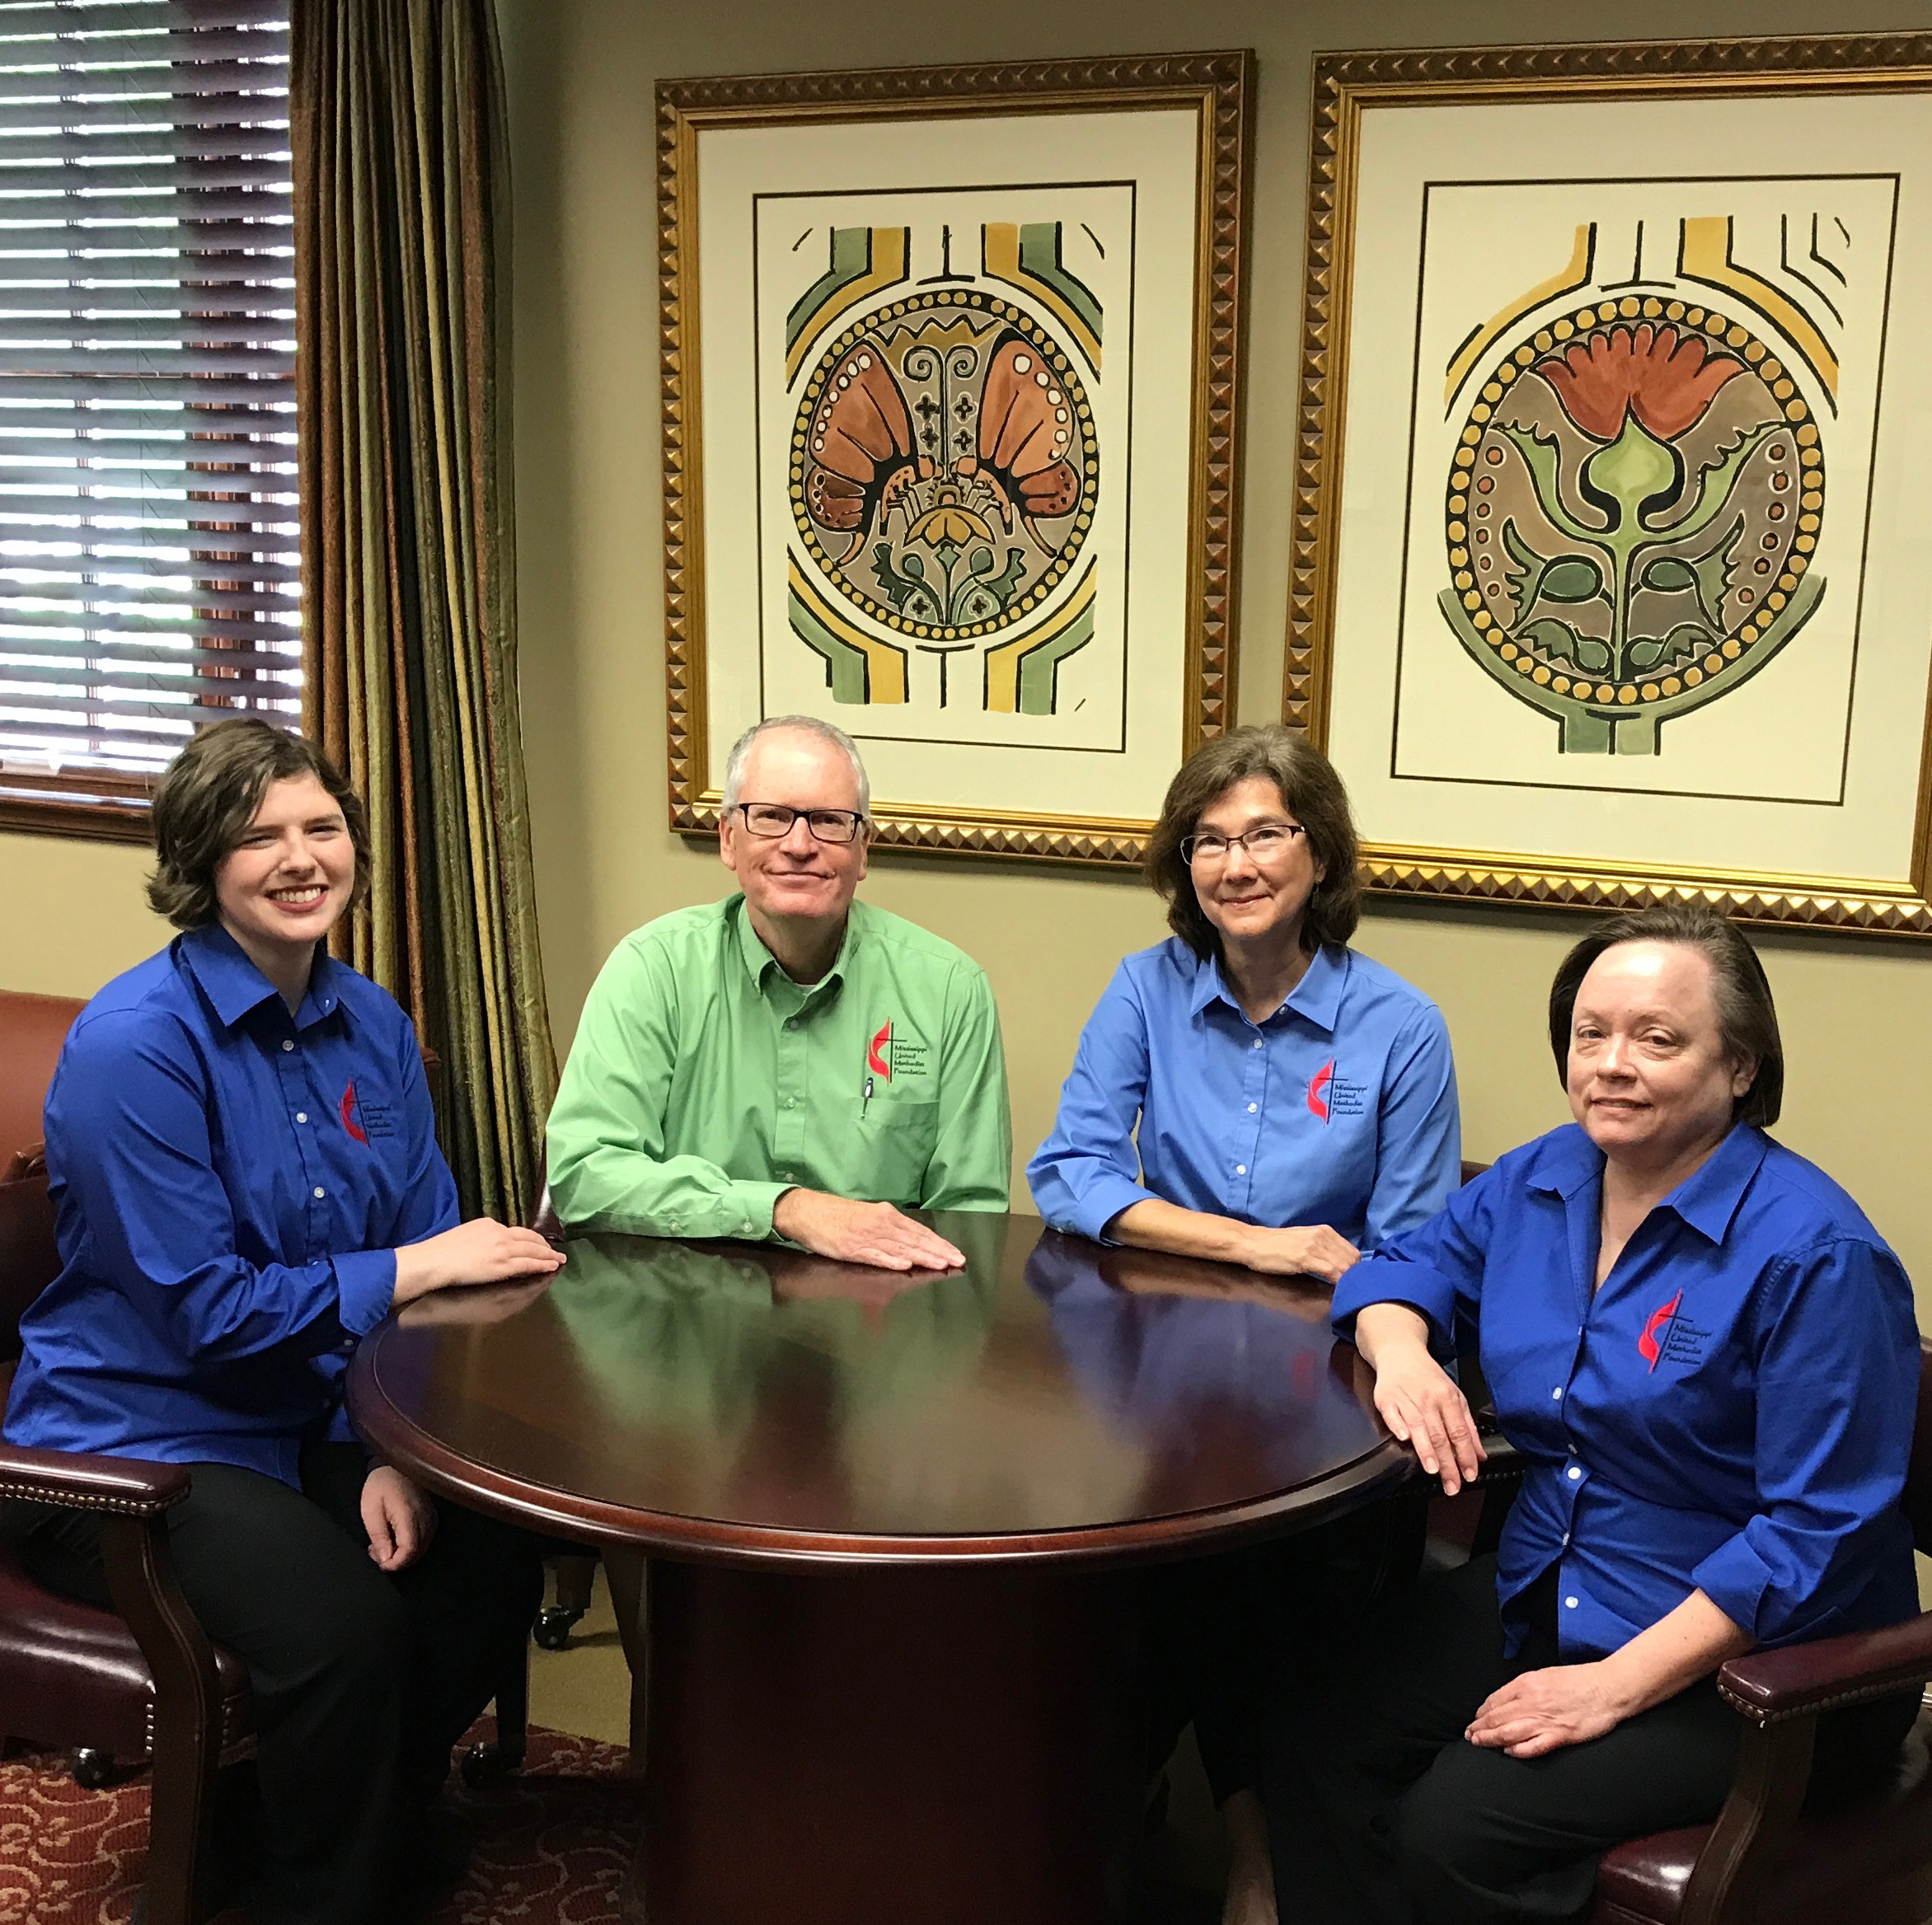 Melissa Blakely, Mike Hicks, Mary Lee Reed, and Billie Spraberry